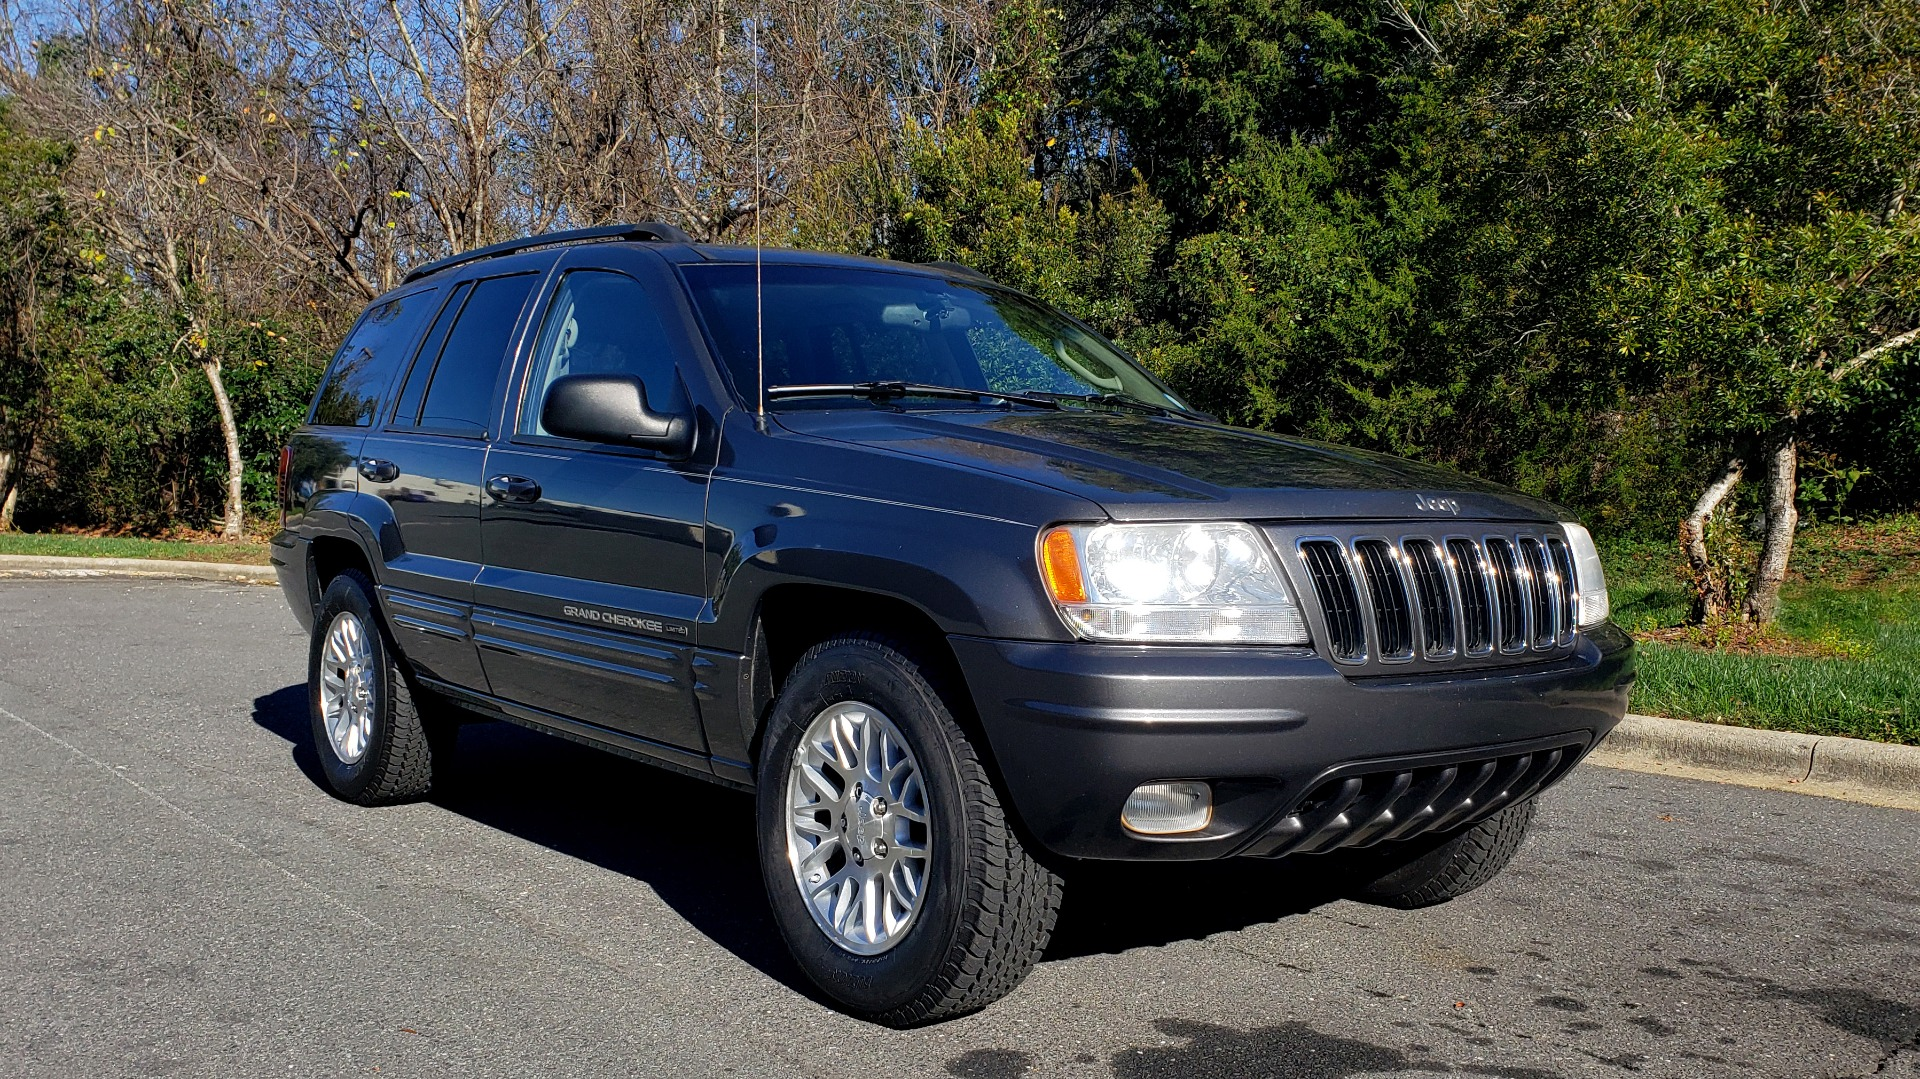 Used 2002 Jeep GRAND CHEROKEE LIMITED 4X4 / SUNROOF / 4.7L V8 / 5-SPD AUTO / CLD WTHR for sale Sold at Formula Imports in Charlotte NC 28227 4